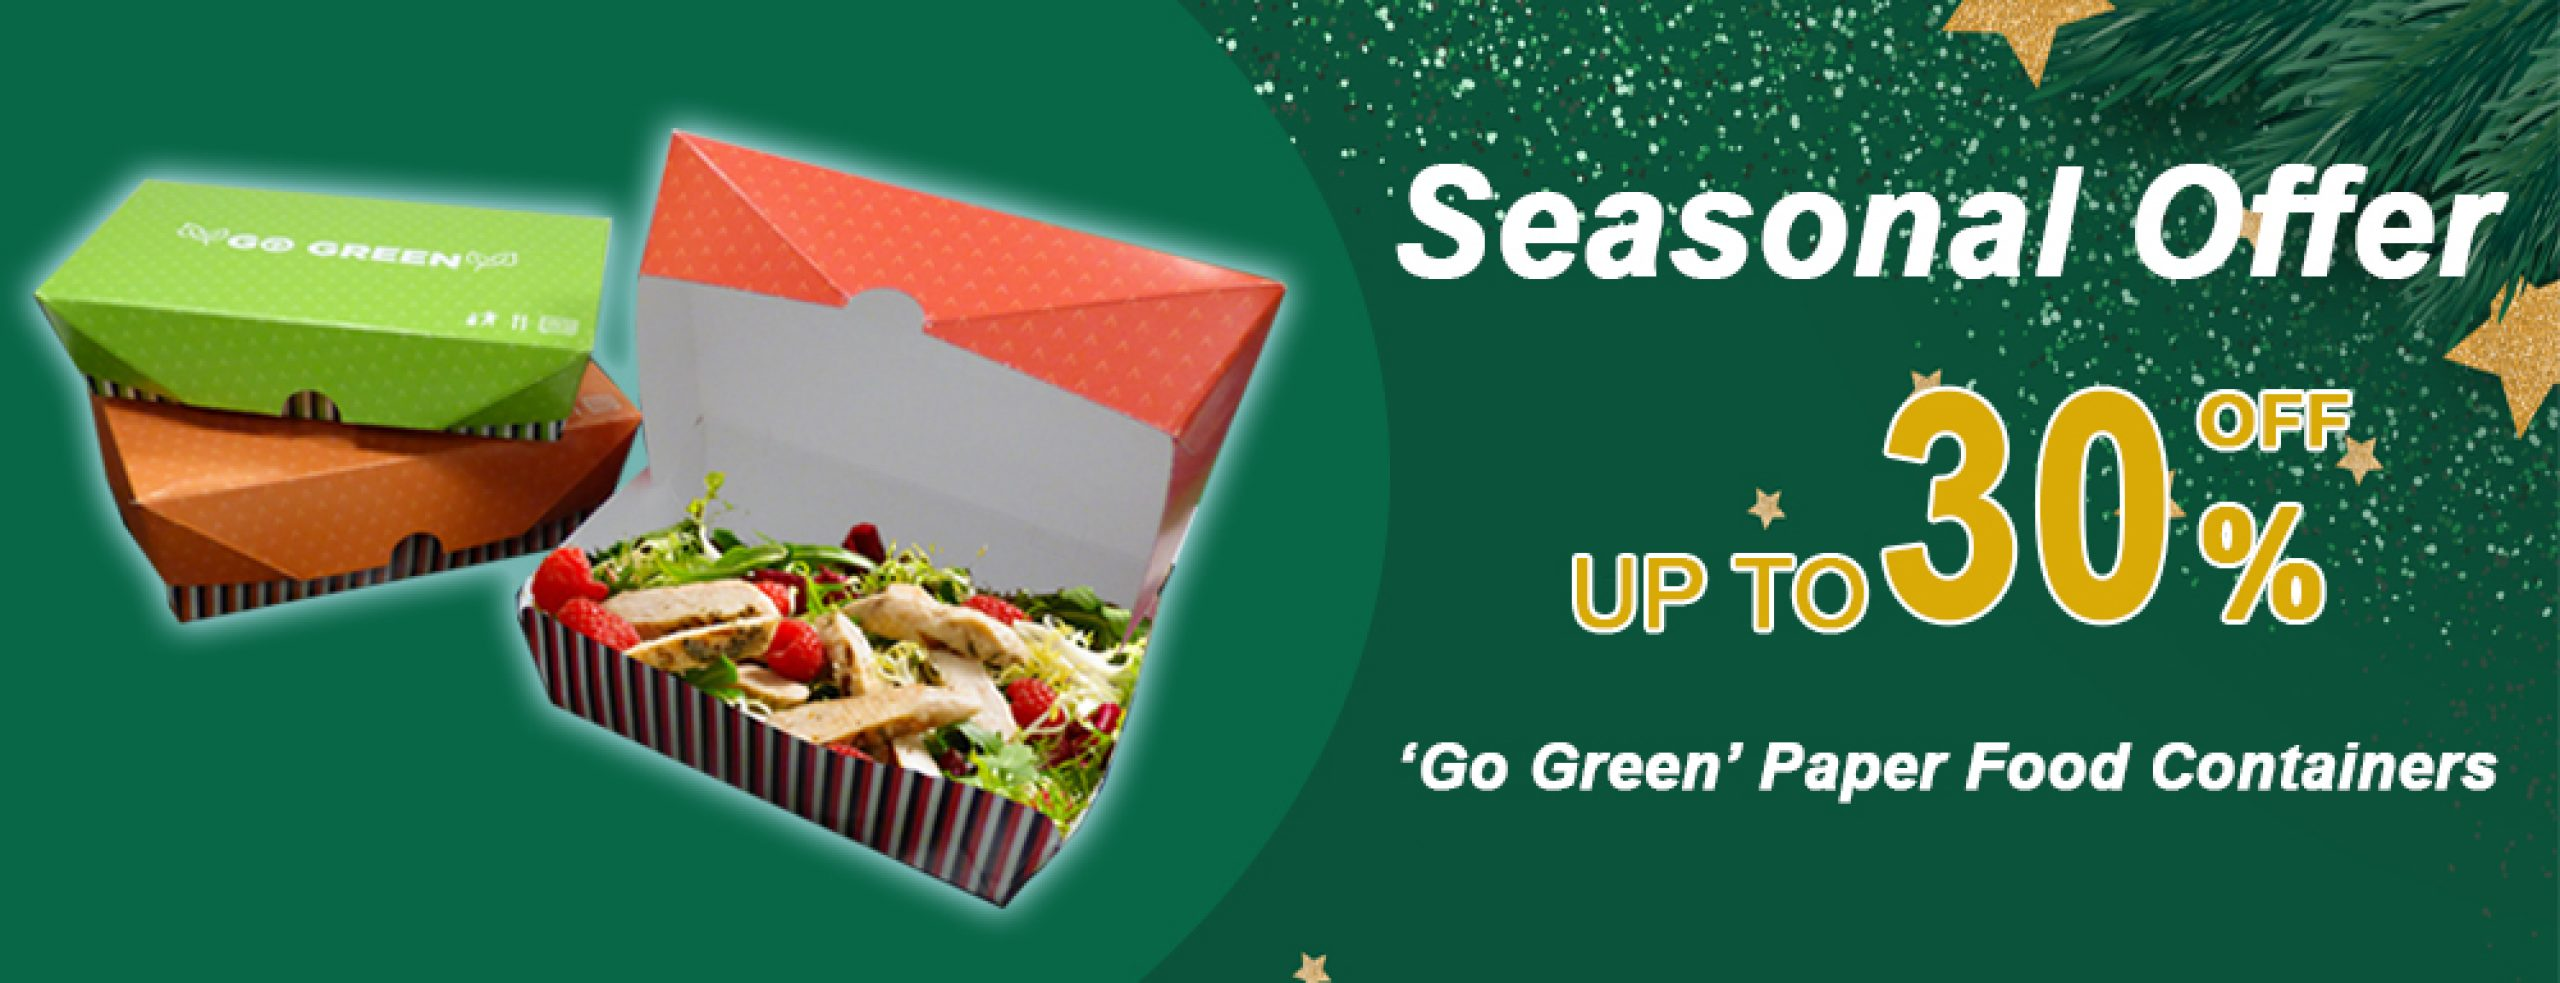 go green seasonal offer banner